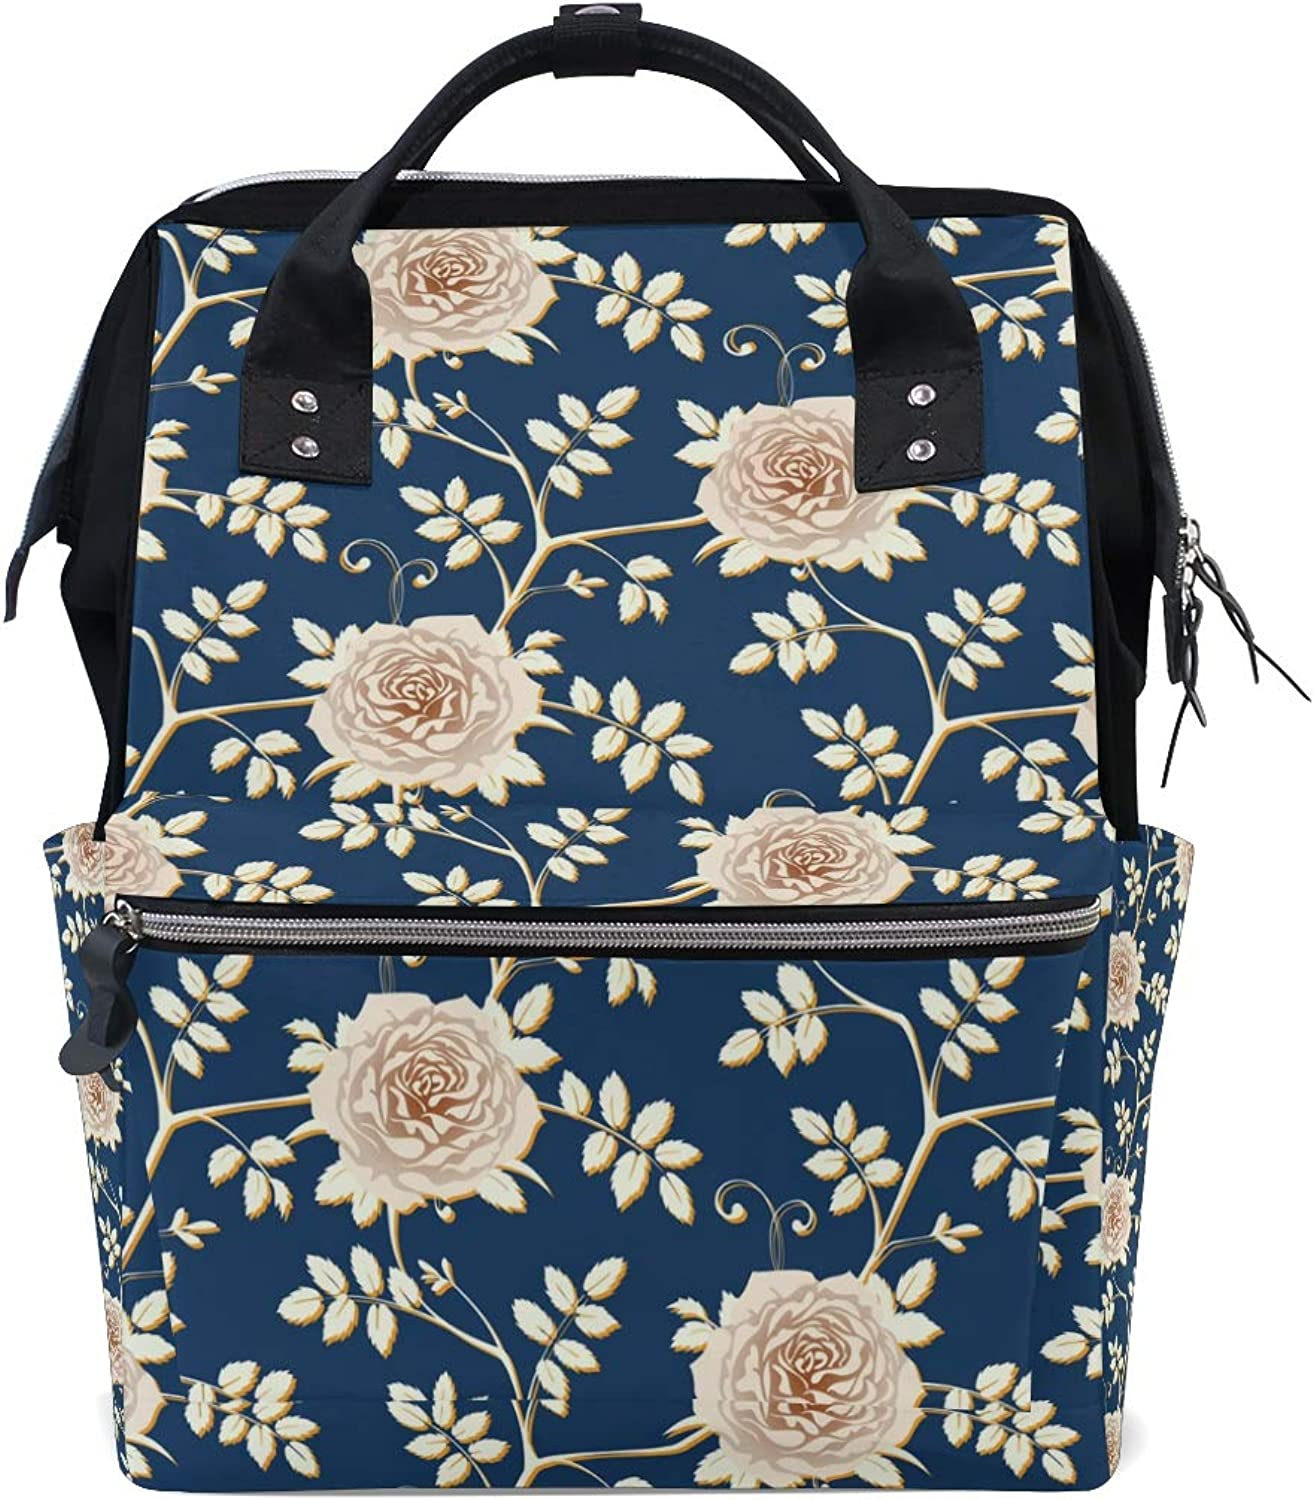 ColourLife Diaper bag Backpack Flora pinks On Dark bluee Tote Bag Casual Daypack Multifunctional Nappy Bags